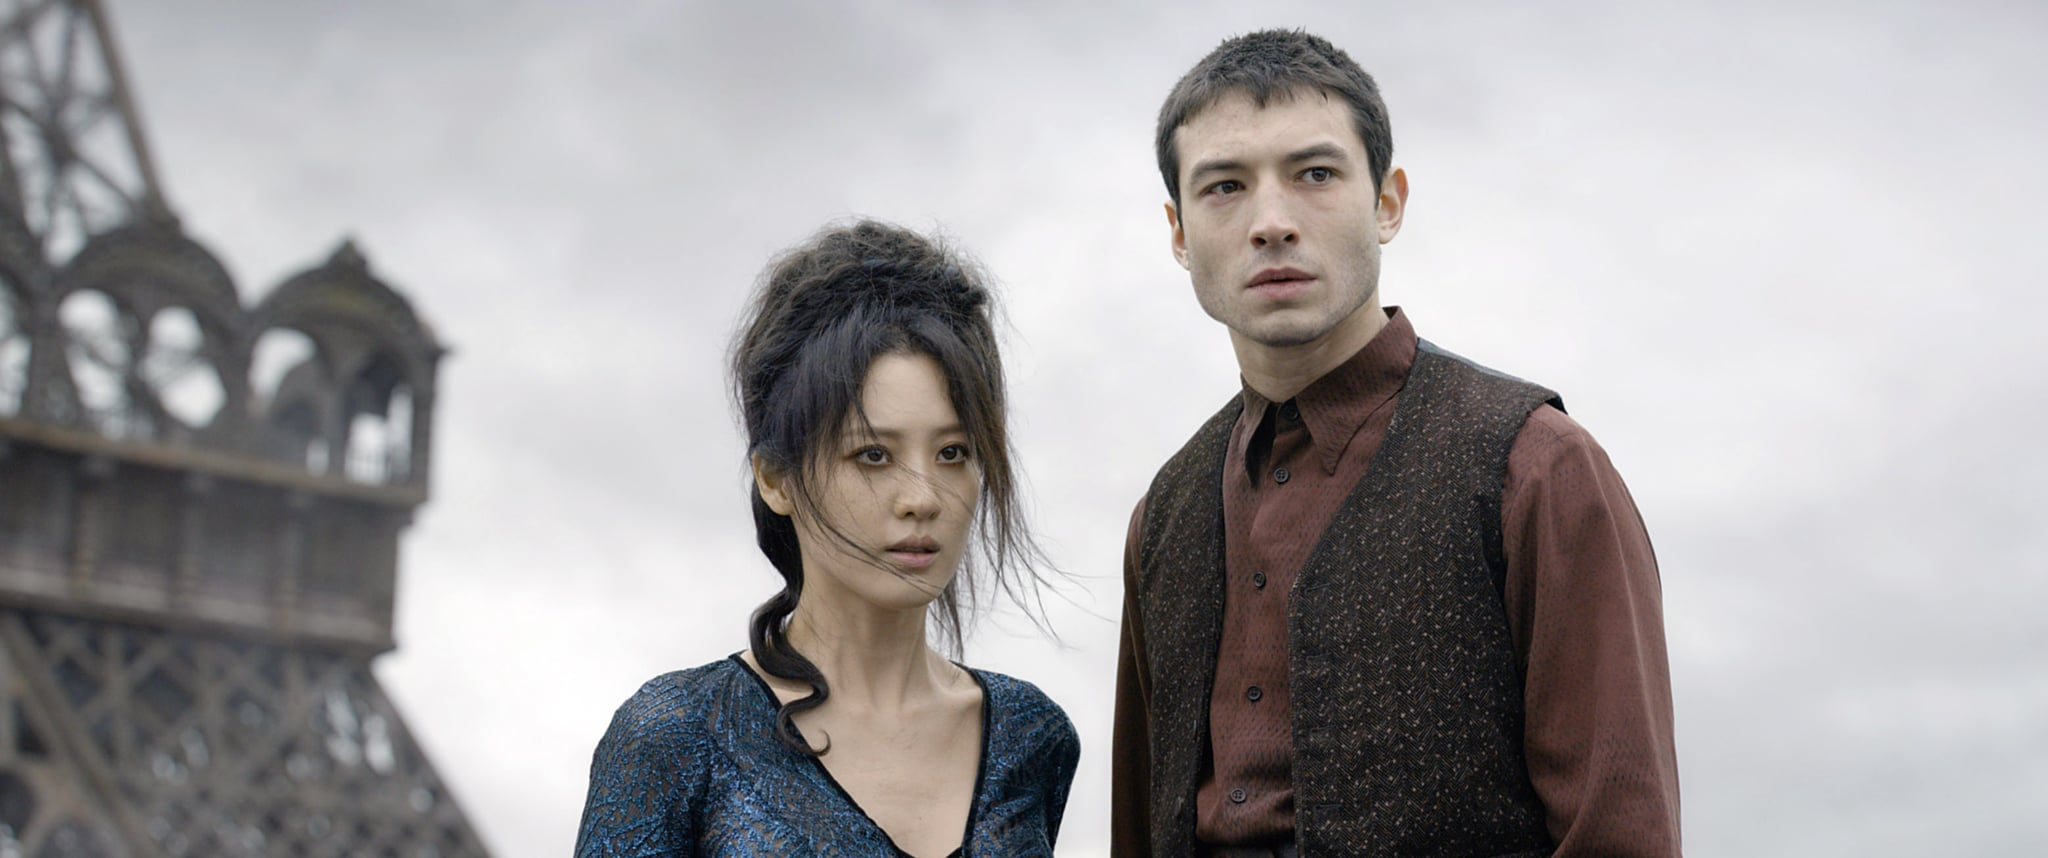 FANTASTIC BEASTS: THE CRIMES OF GRINDELWALD, from left: Claudia Kim, Ezra Miller, 2018.  2018 Warner Bros. Ent.  All Rights Reserved.Wizarding WorldTM Publishing Rights  J.K. Rowling WIZARDING WORLD and all related characters and elements are trademarks of and  Warner Bros. Entertainment Inc. /Courtesy Everett Collection